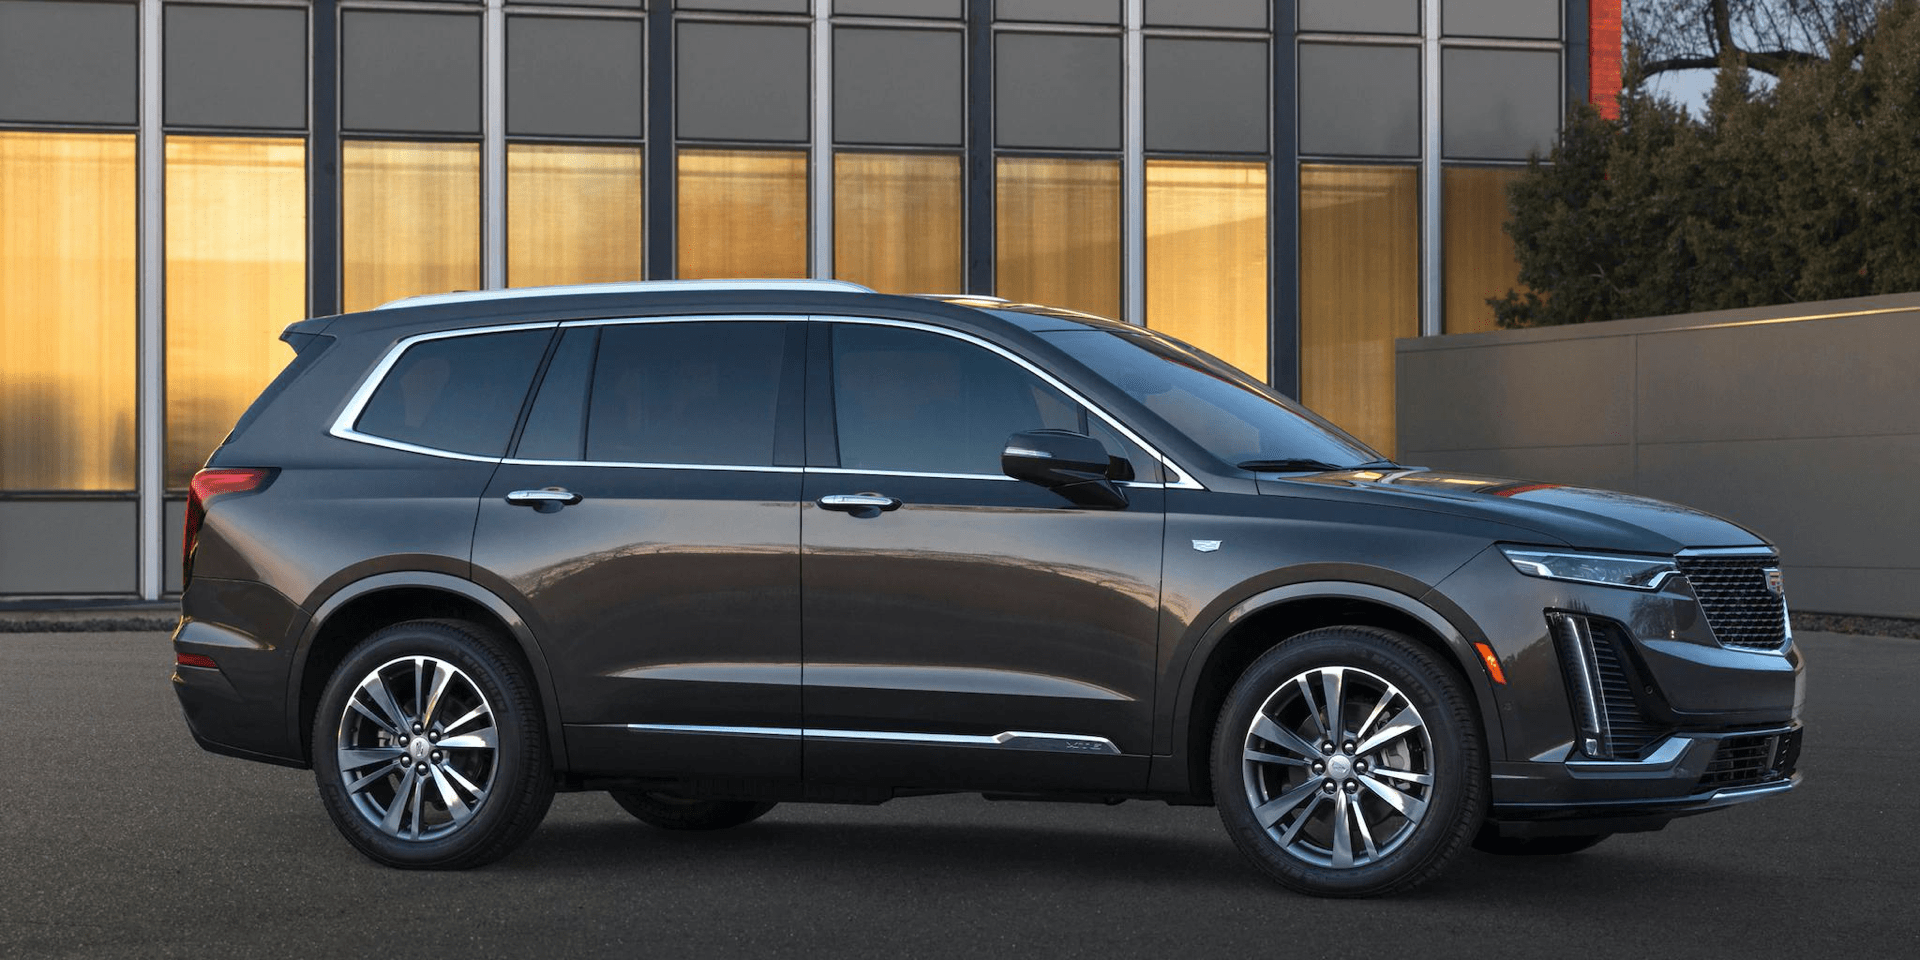 2020 Cadillac XT6 parked outside modern home